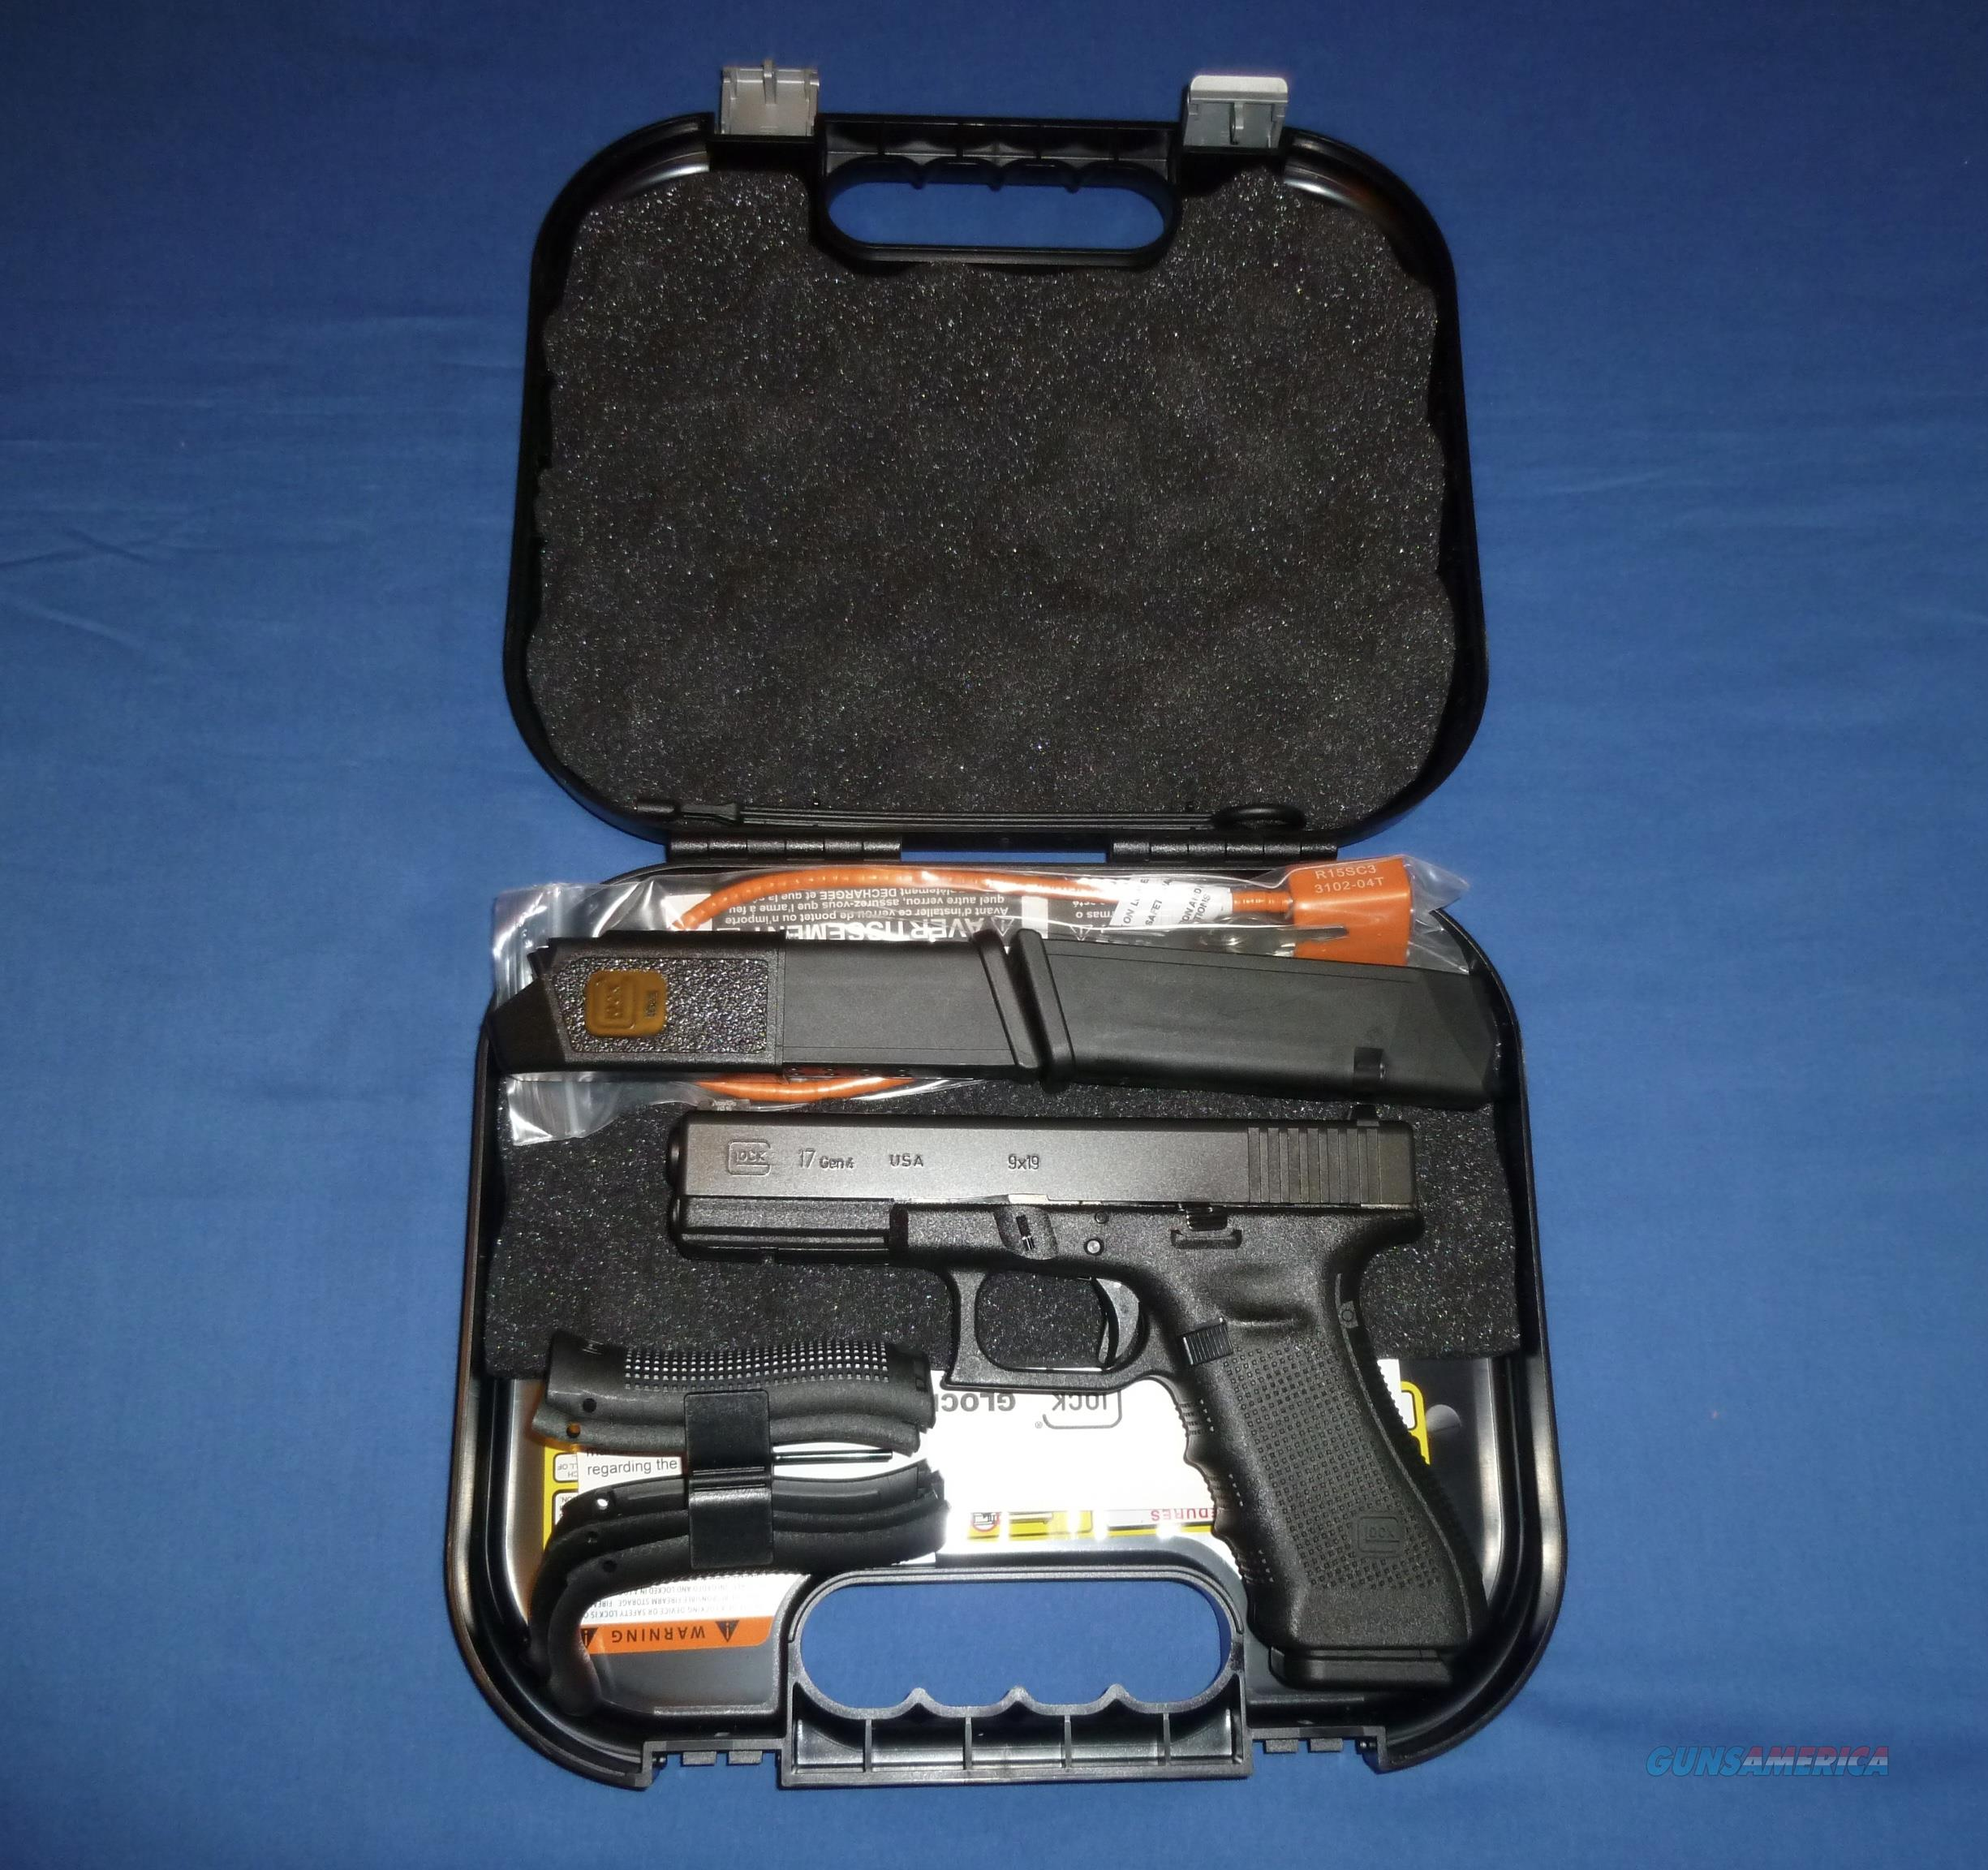 GLOCK GEN 4 MODEL 17 9MM PISTOL W/AMERIGLO GLO-PRO SIGHTS, TALO DISTR. EDITION  Guns > Pistols > Glock Pistols > 17